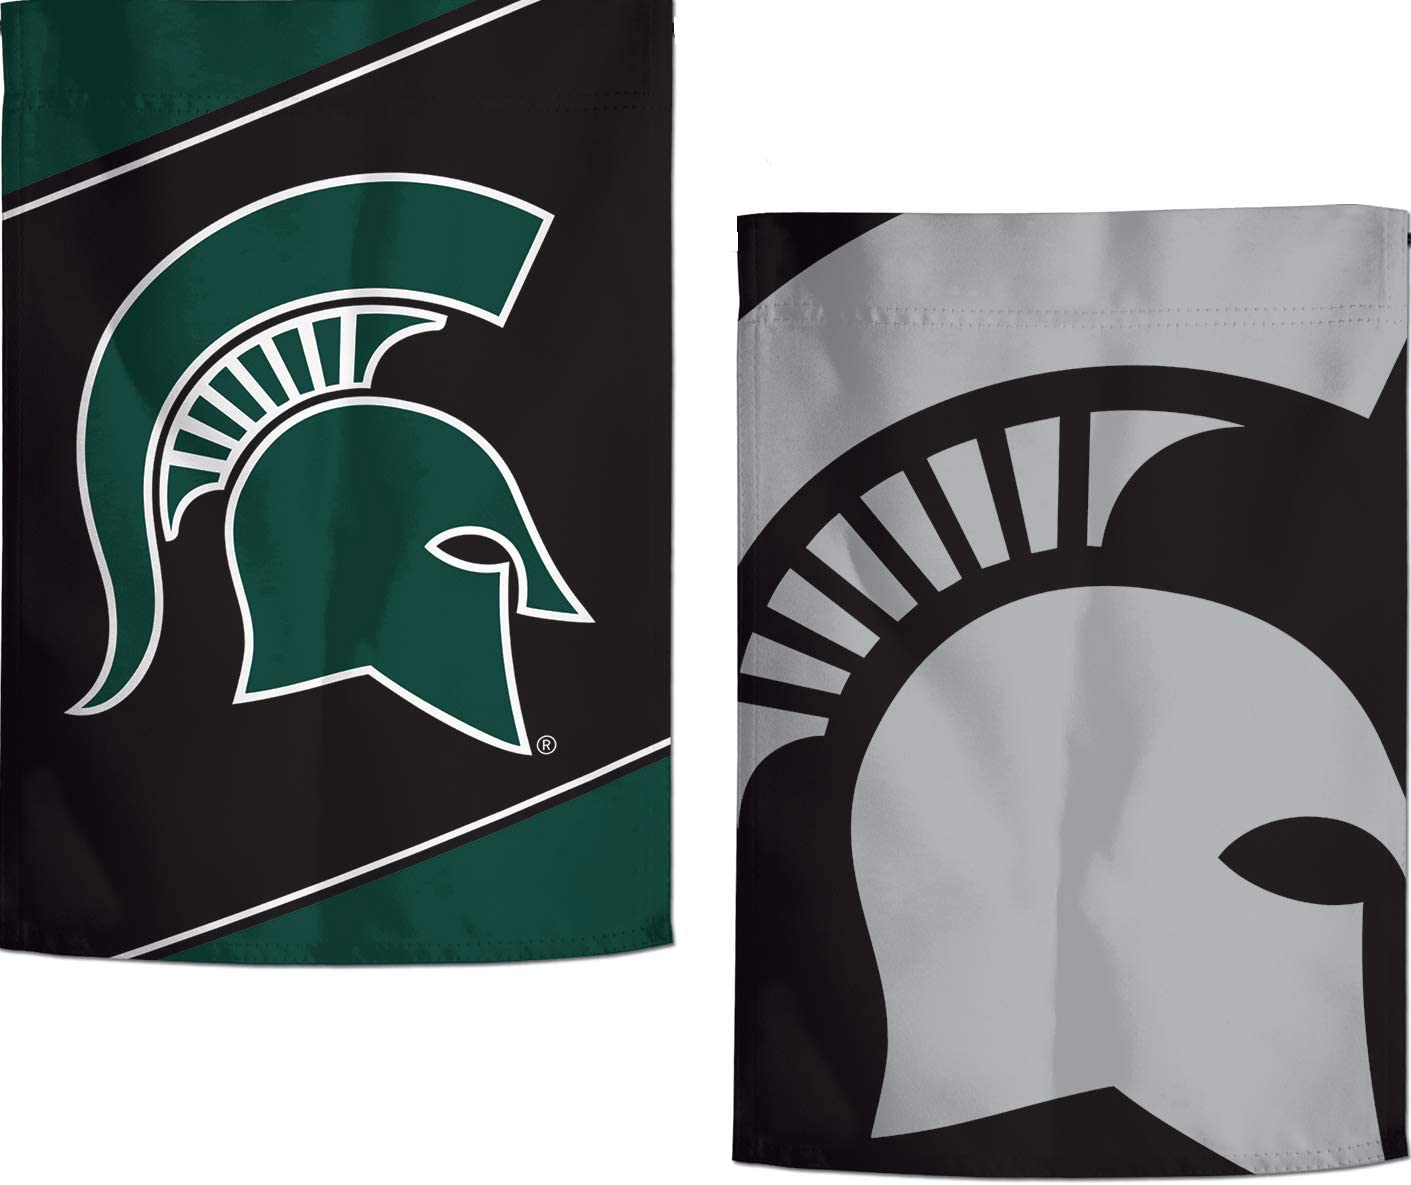 2 Sided Action Stripes and Charcoal Edition 12.5x18 inches WinCraft Michigan State Spartans Garden Flag